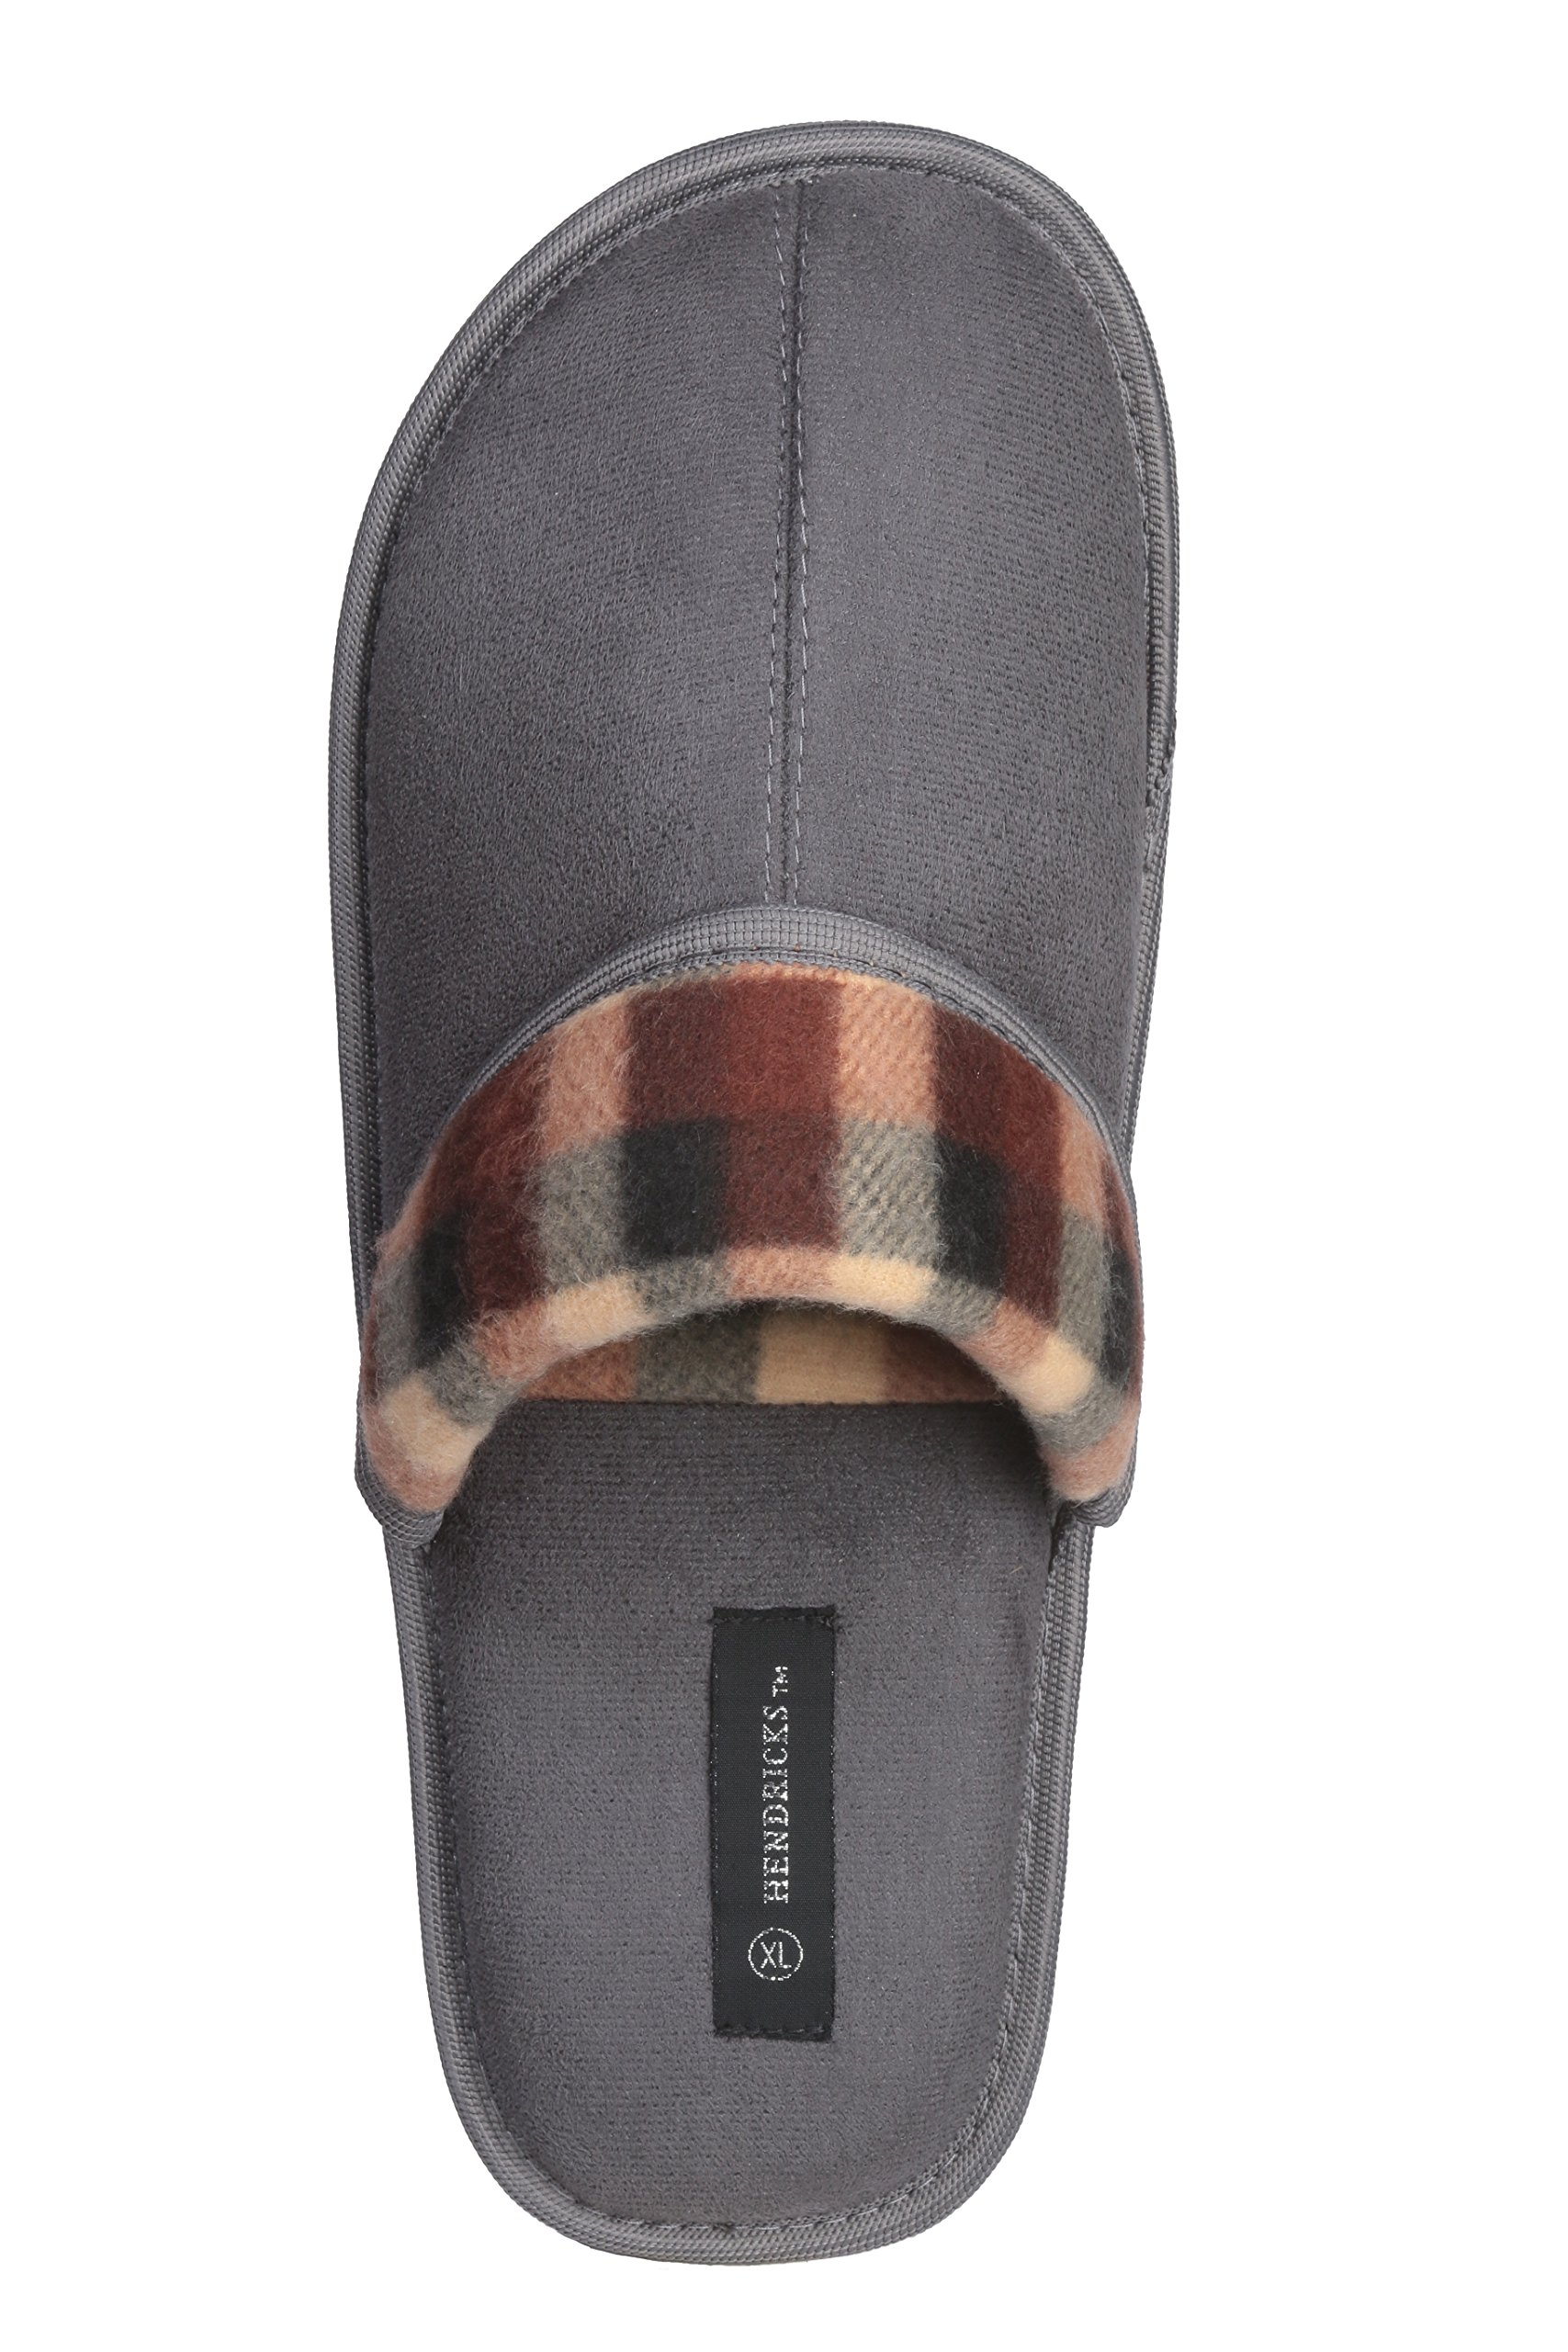 Roxoni Men's Faux Suede Scuff with Plaid Trim Slipper Classic Style with Ultra Soft Comfort Fabric by Roxoni (Image #3)